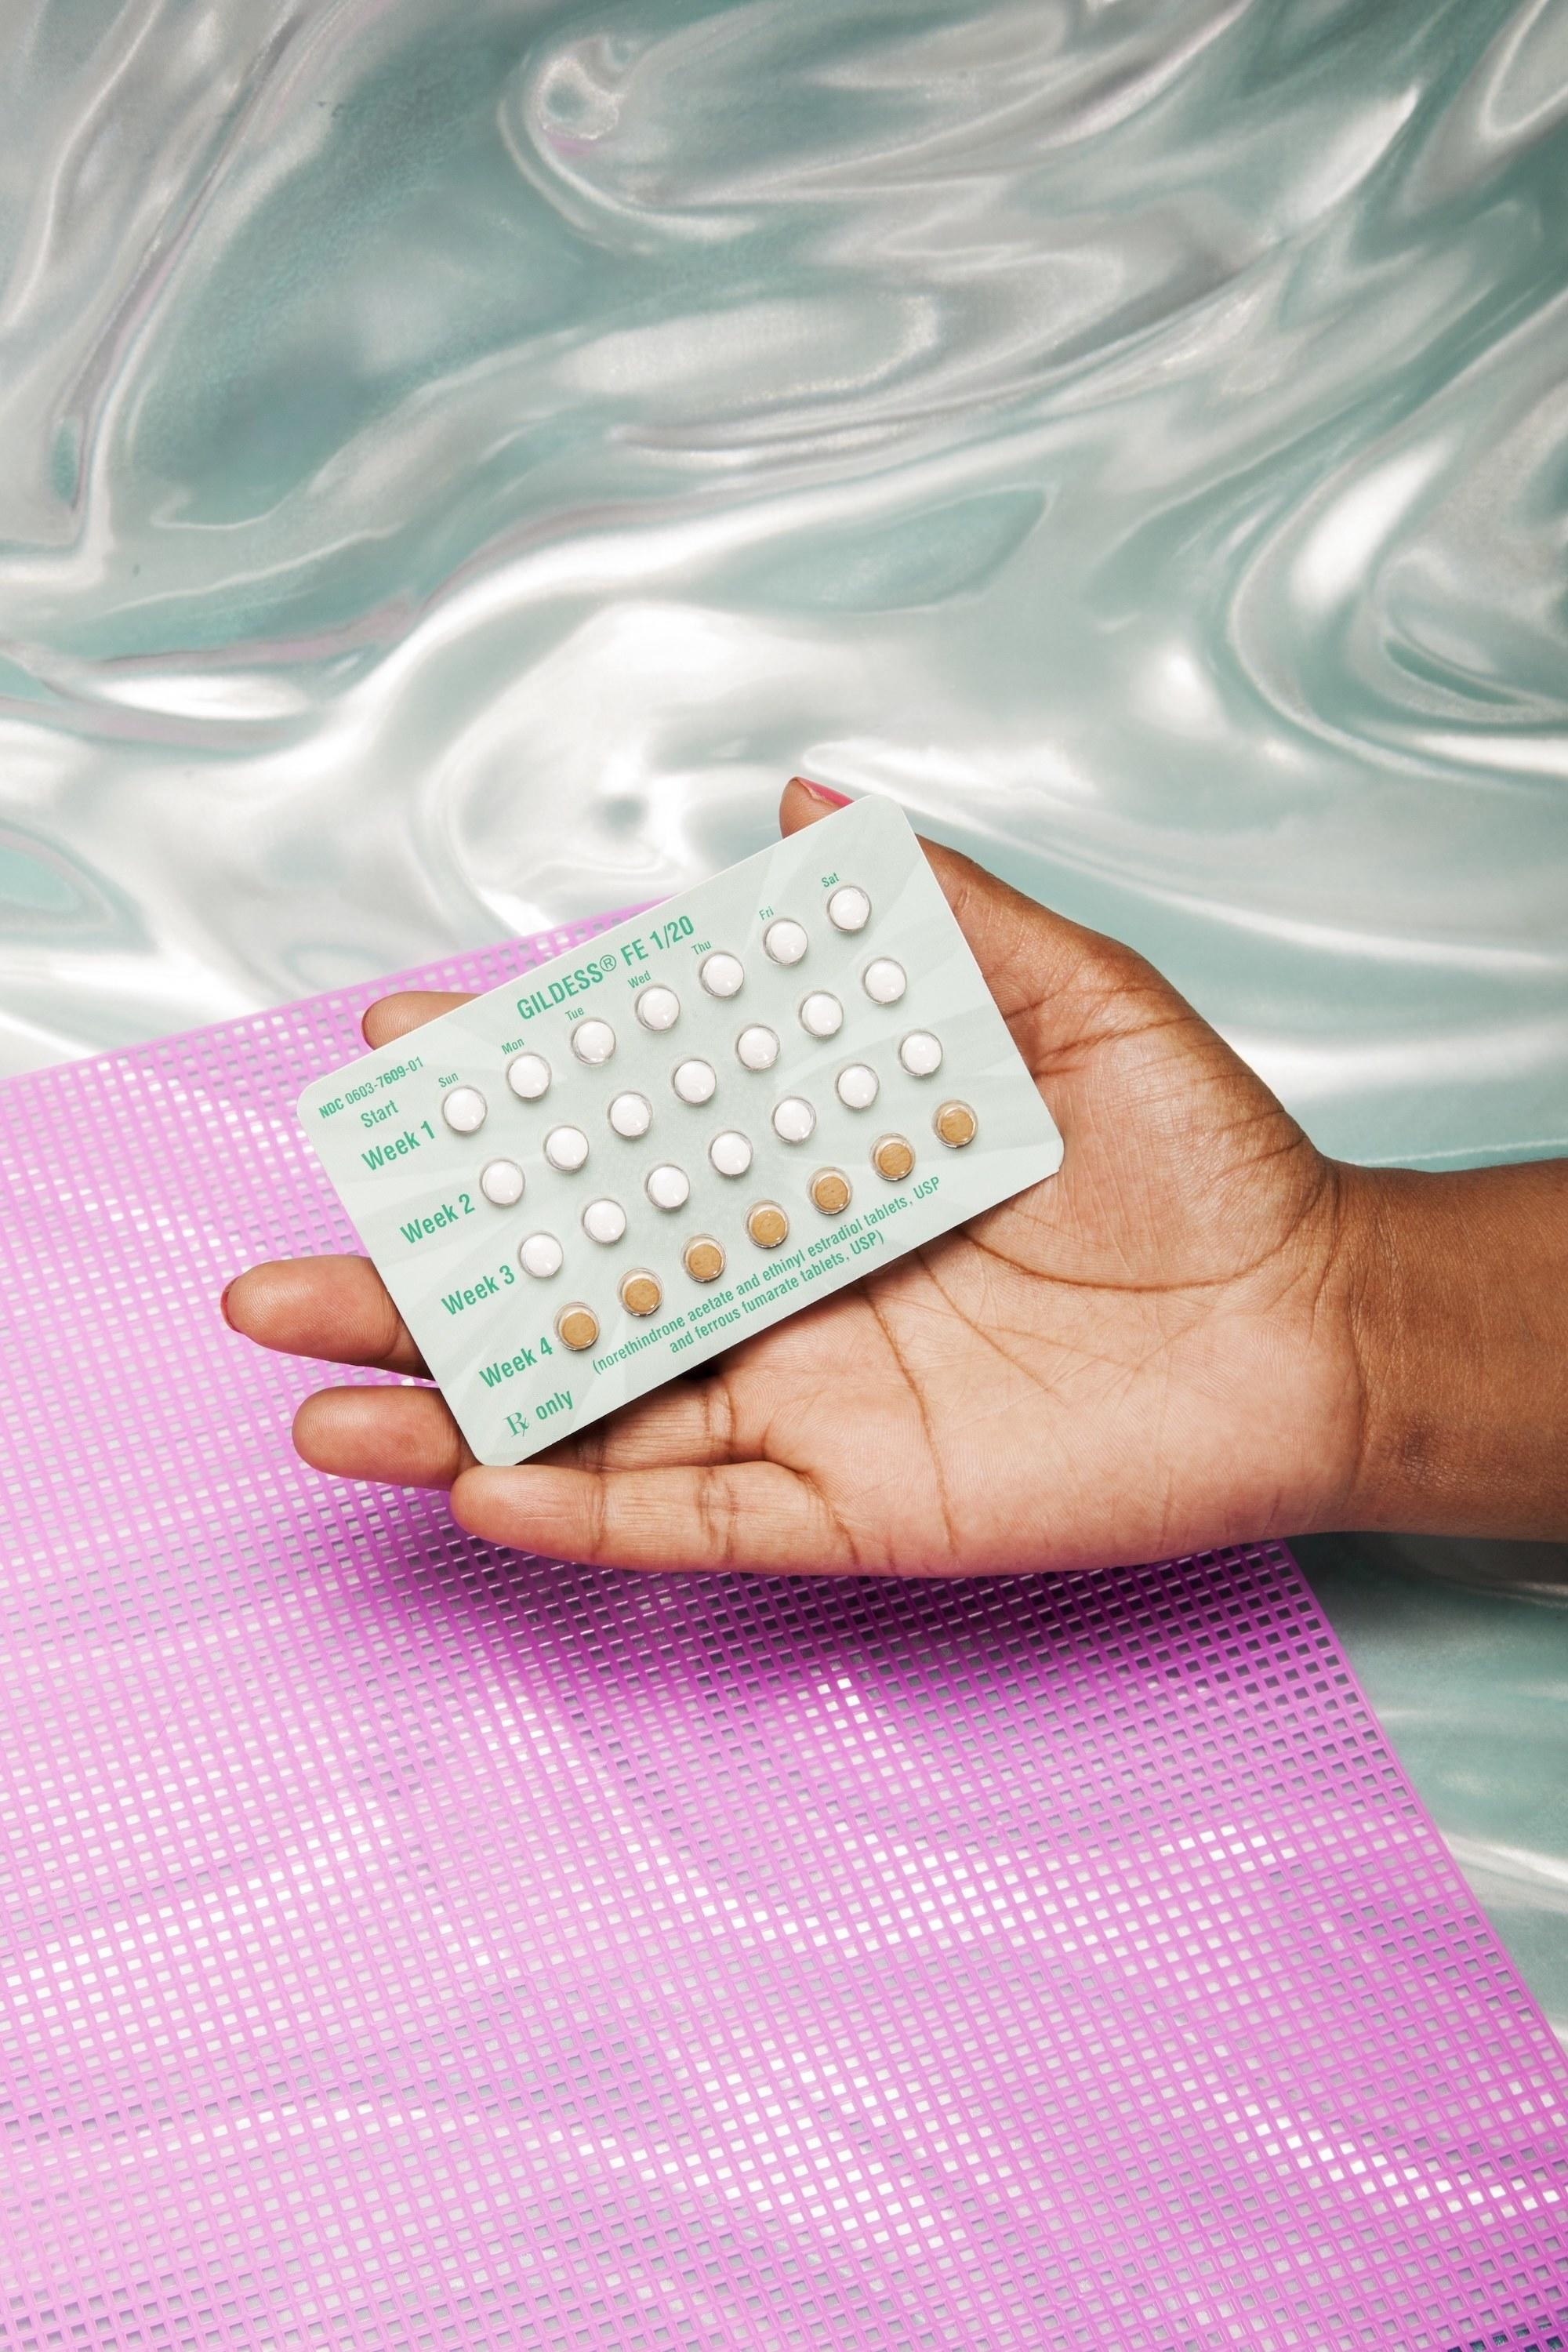 Birth Control: 3 Different Types and How They Work